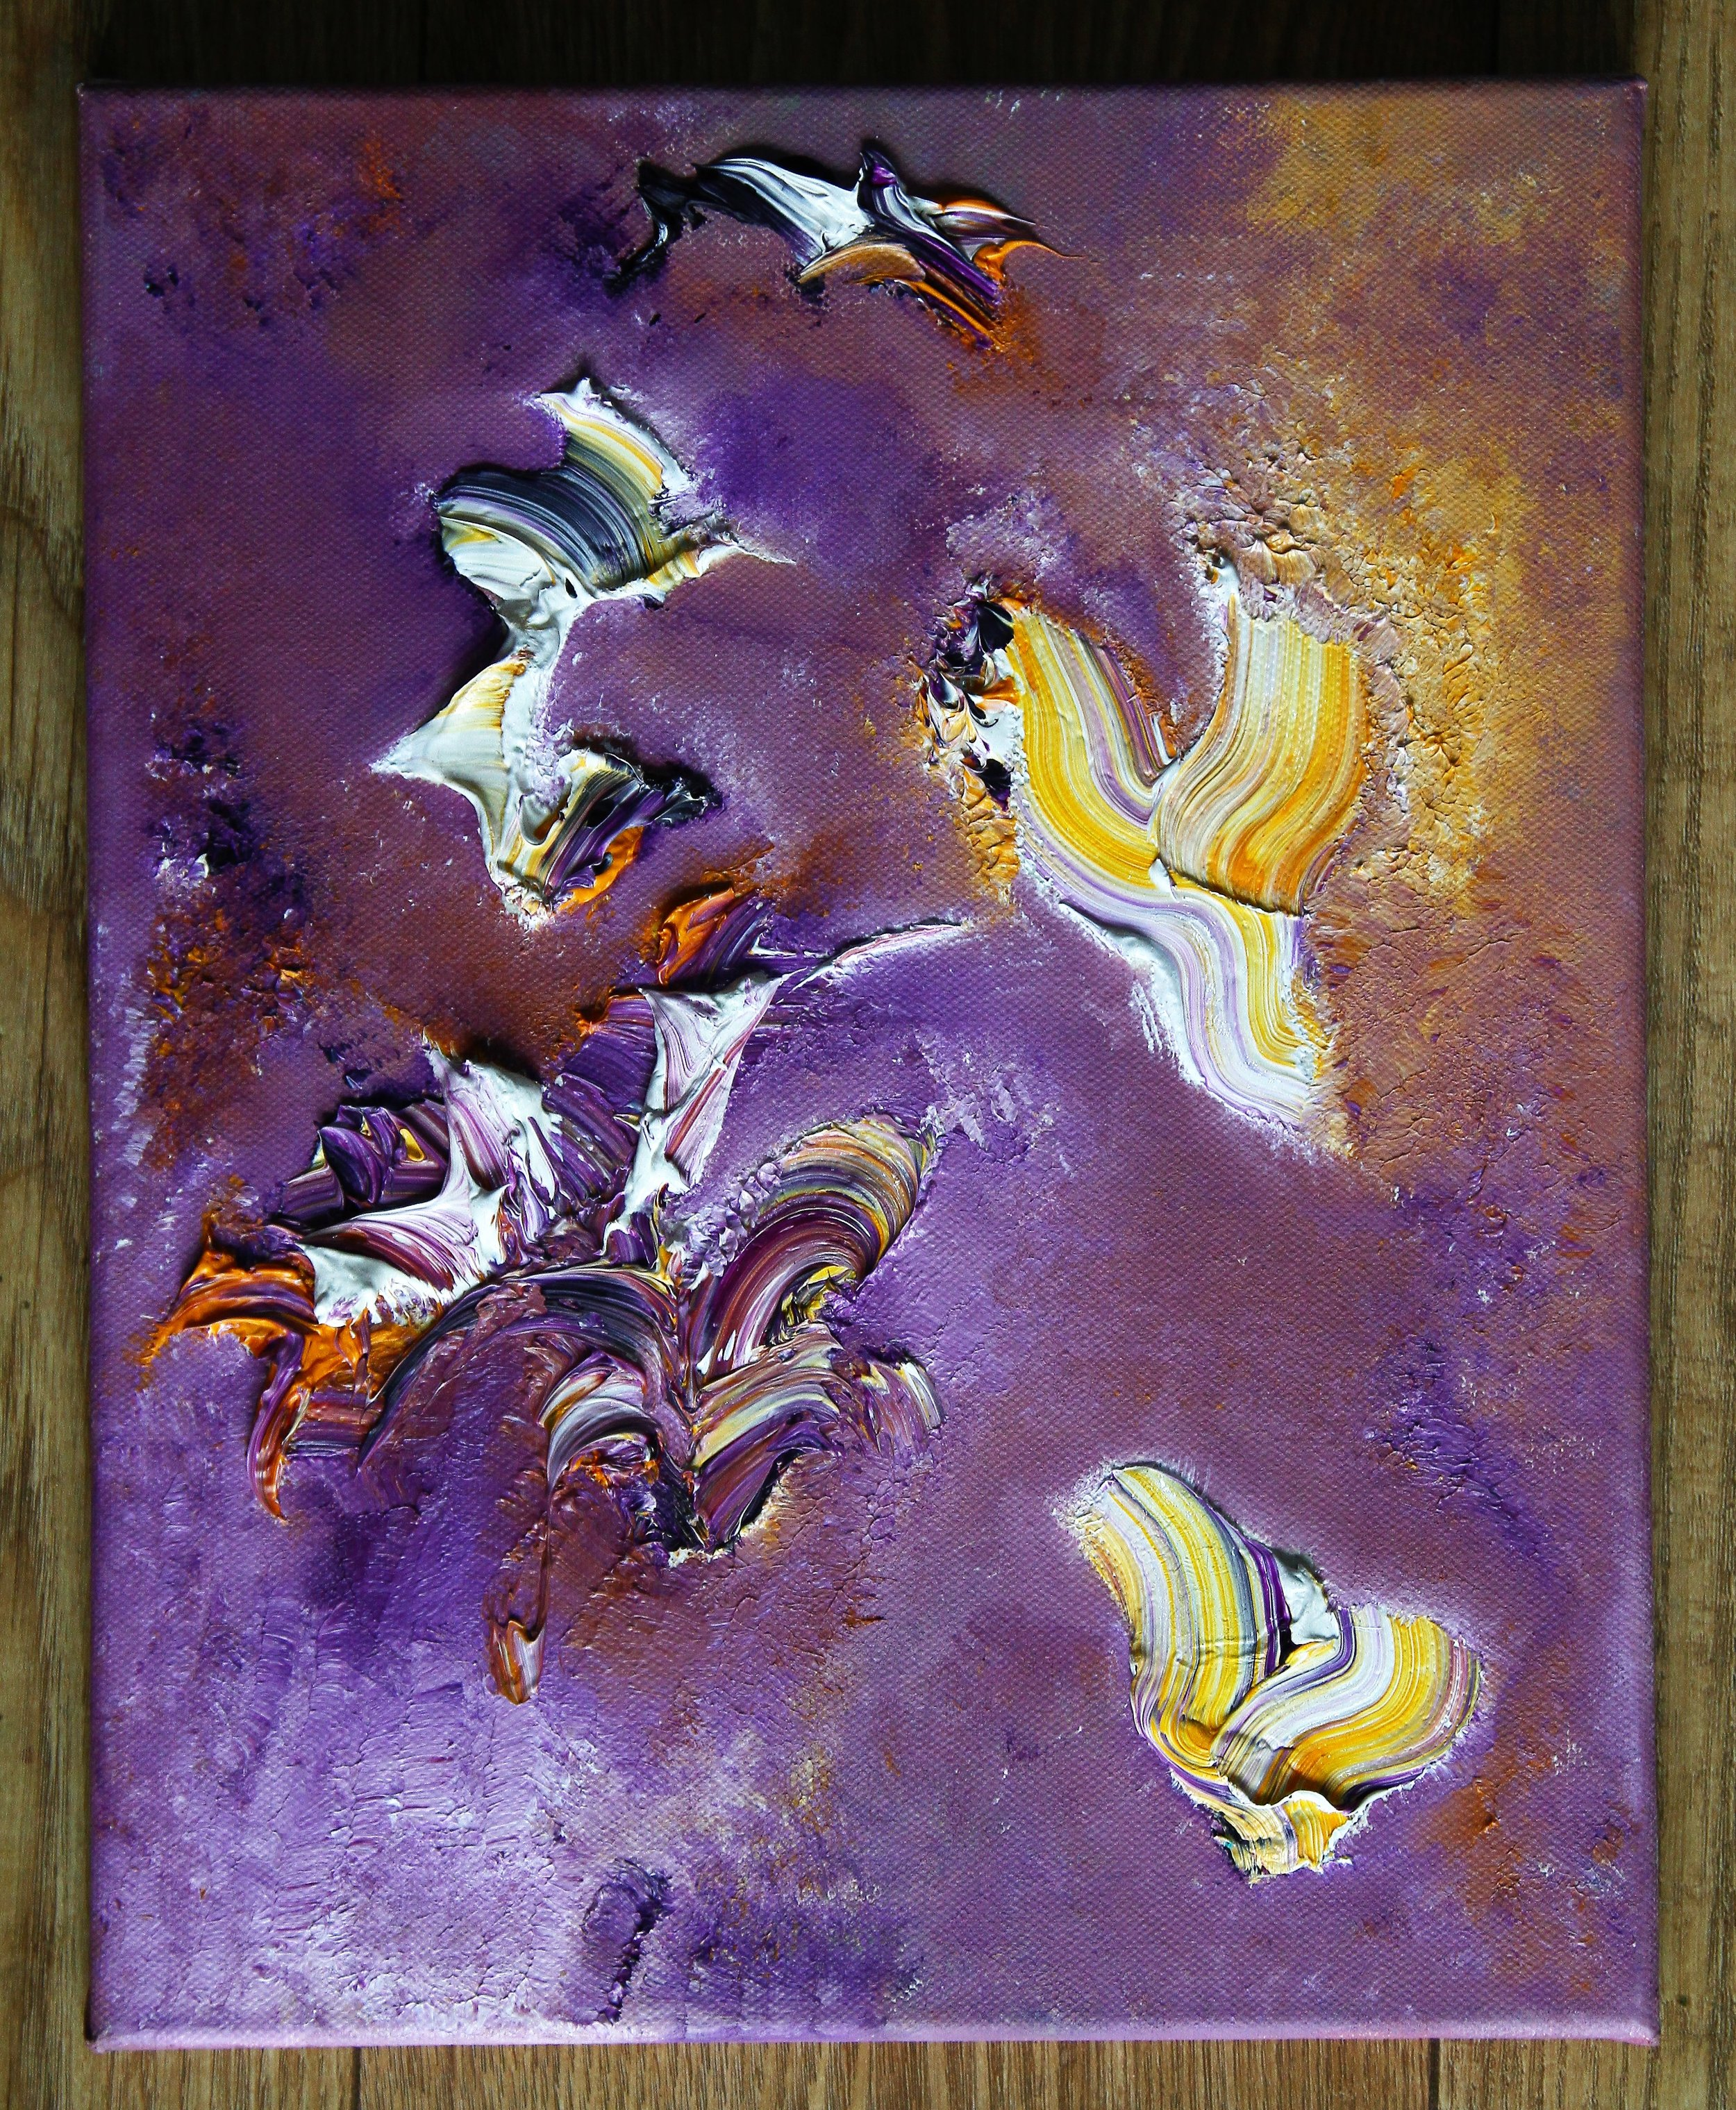 Image: painting by Anna Dyson, available to buy